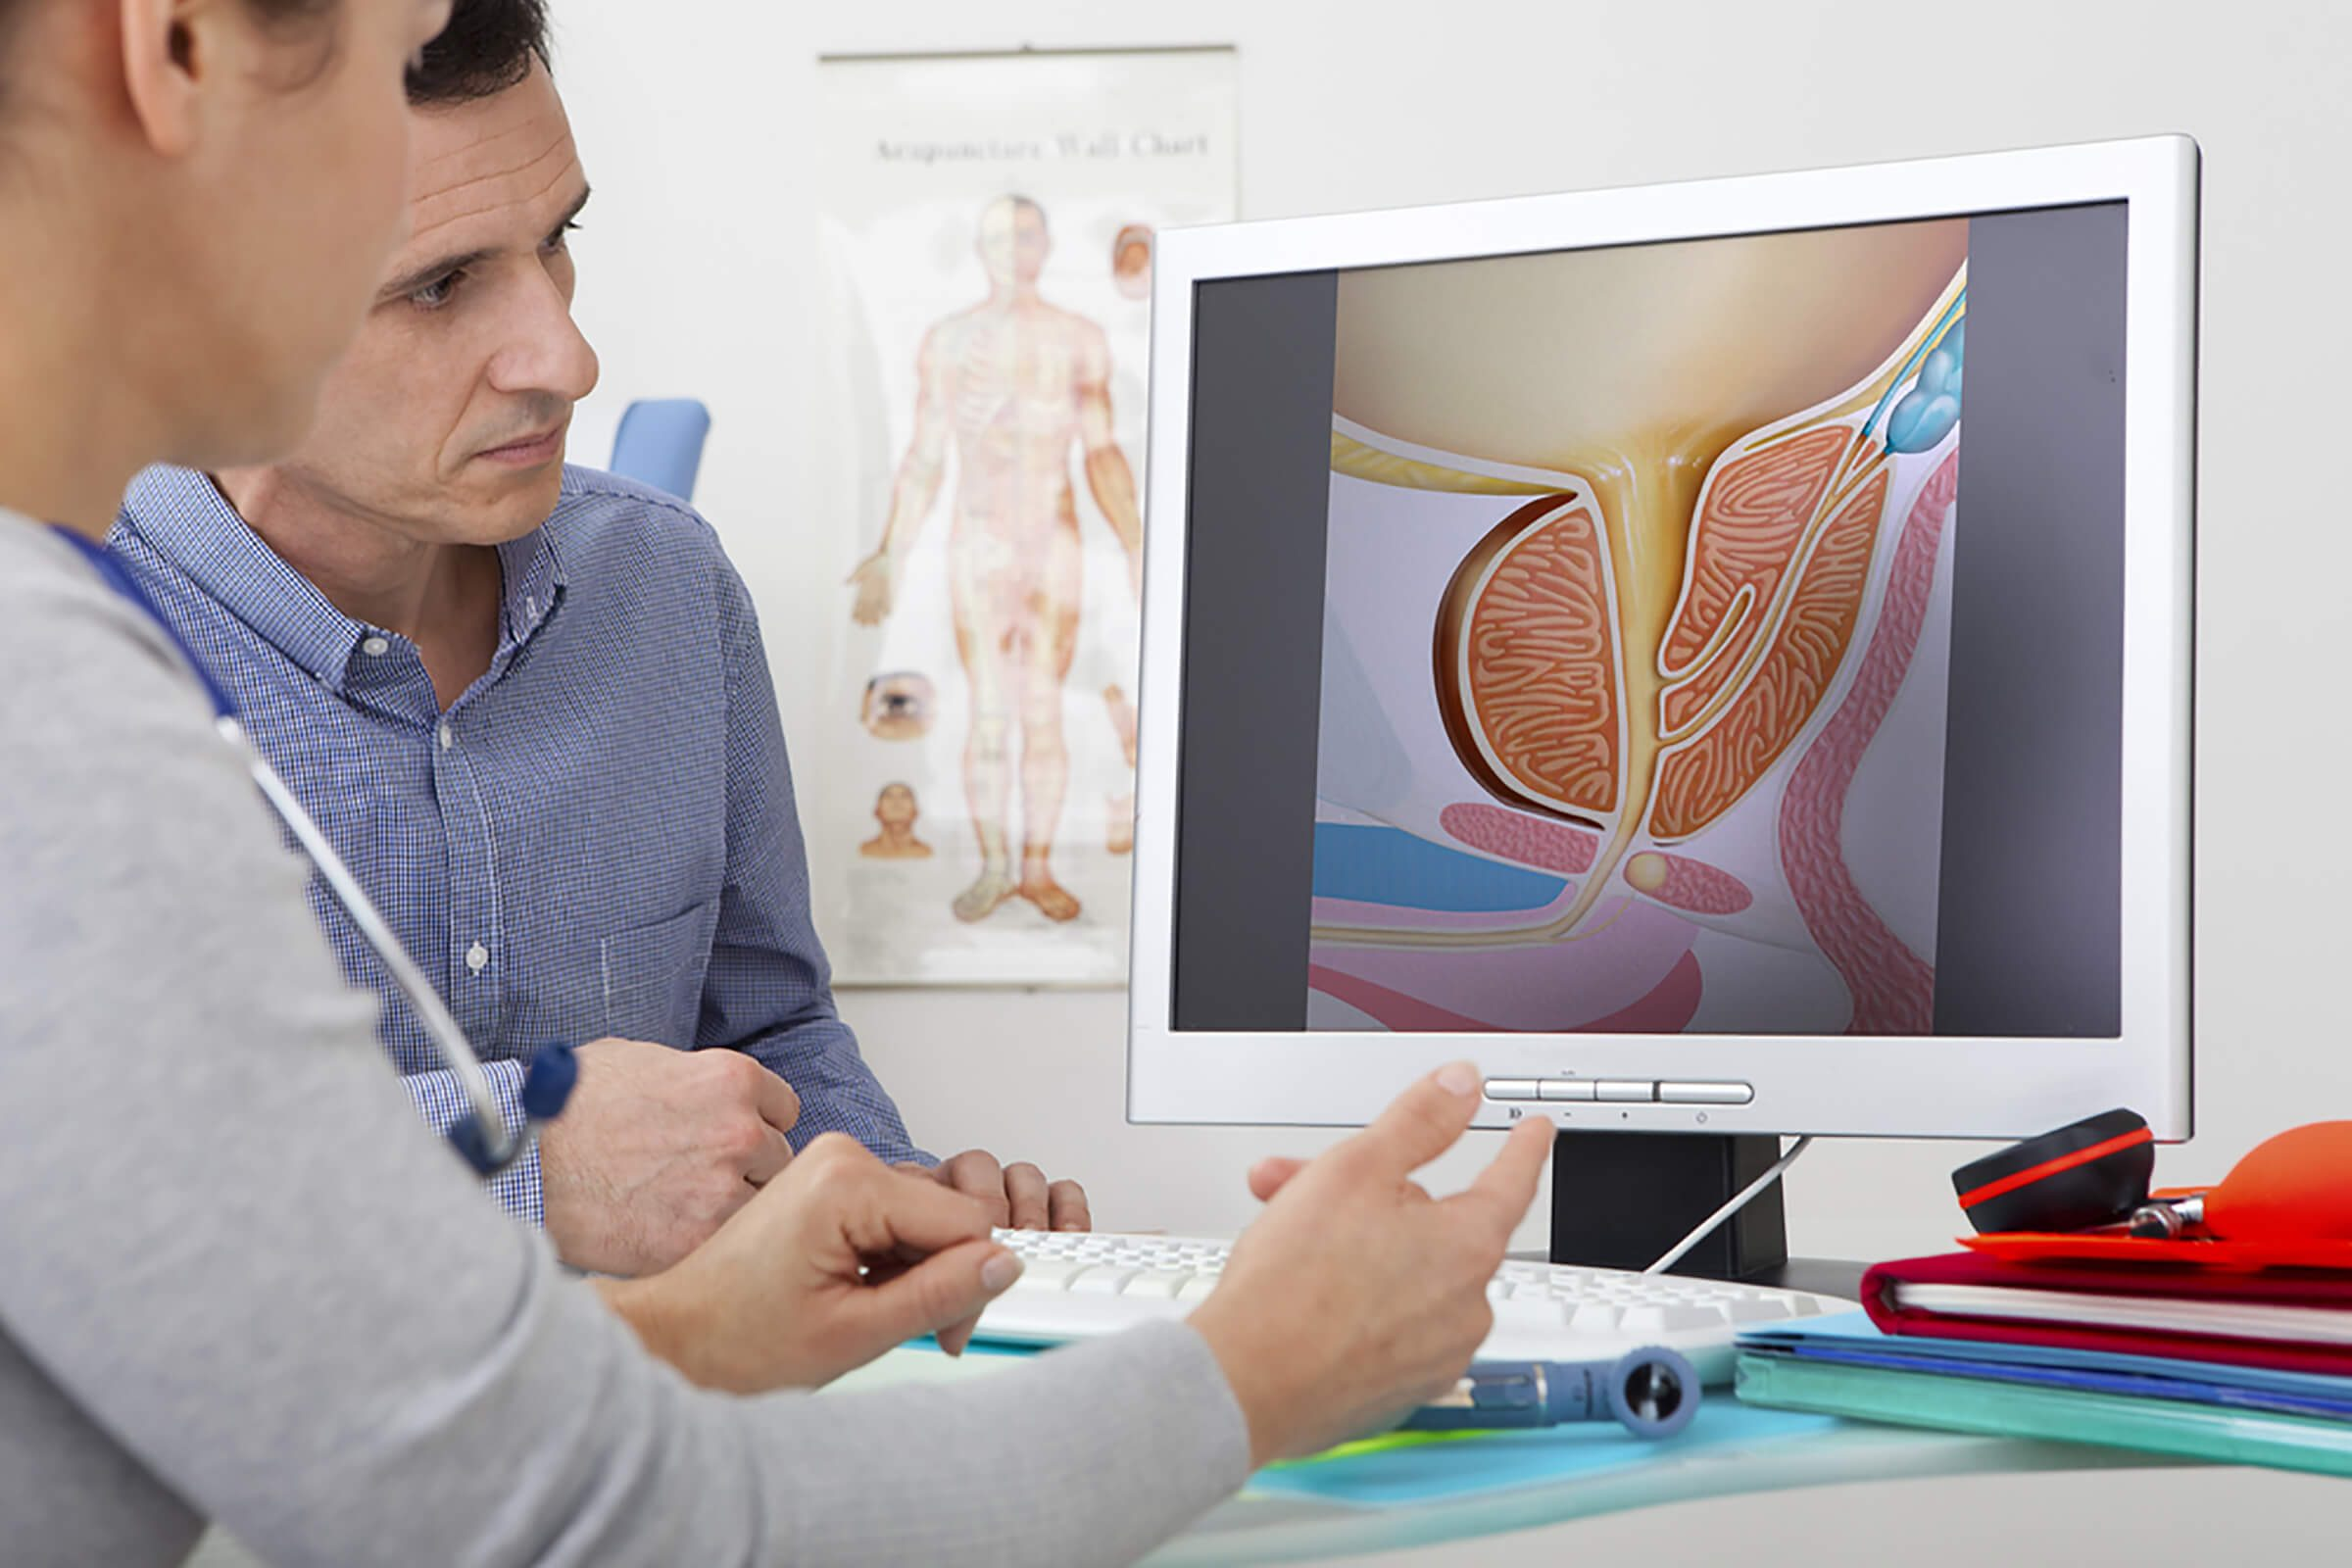 doctor and patient looking at prostate on screen